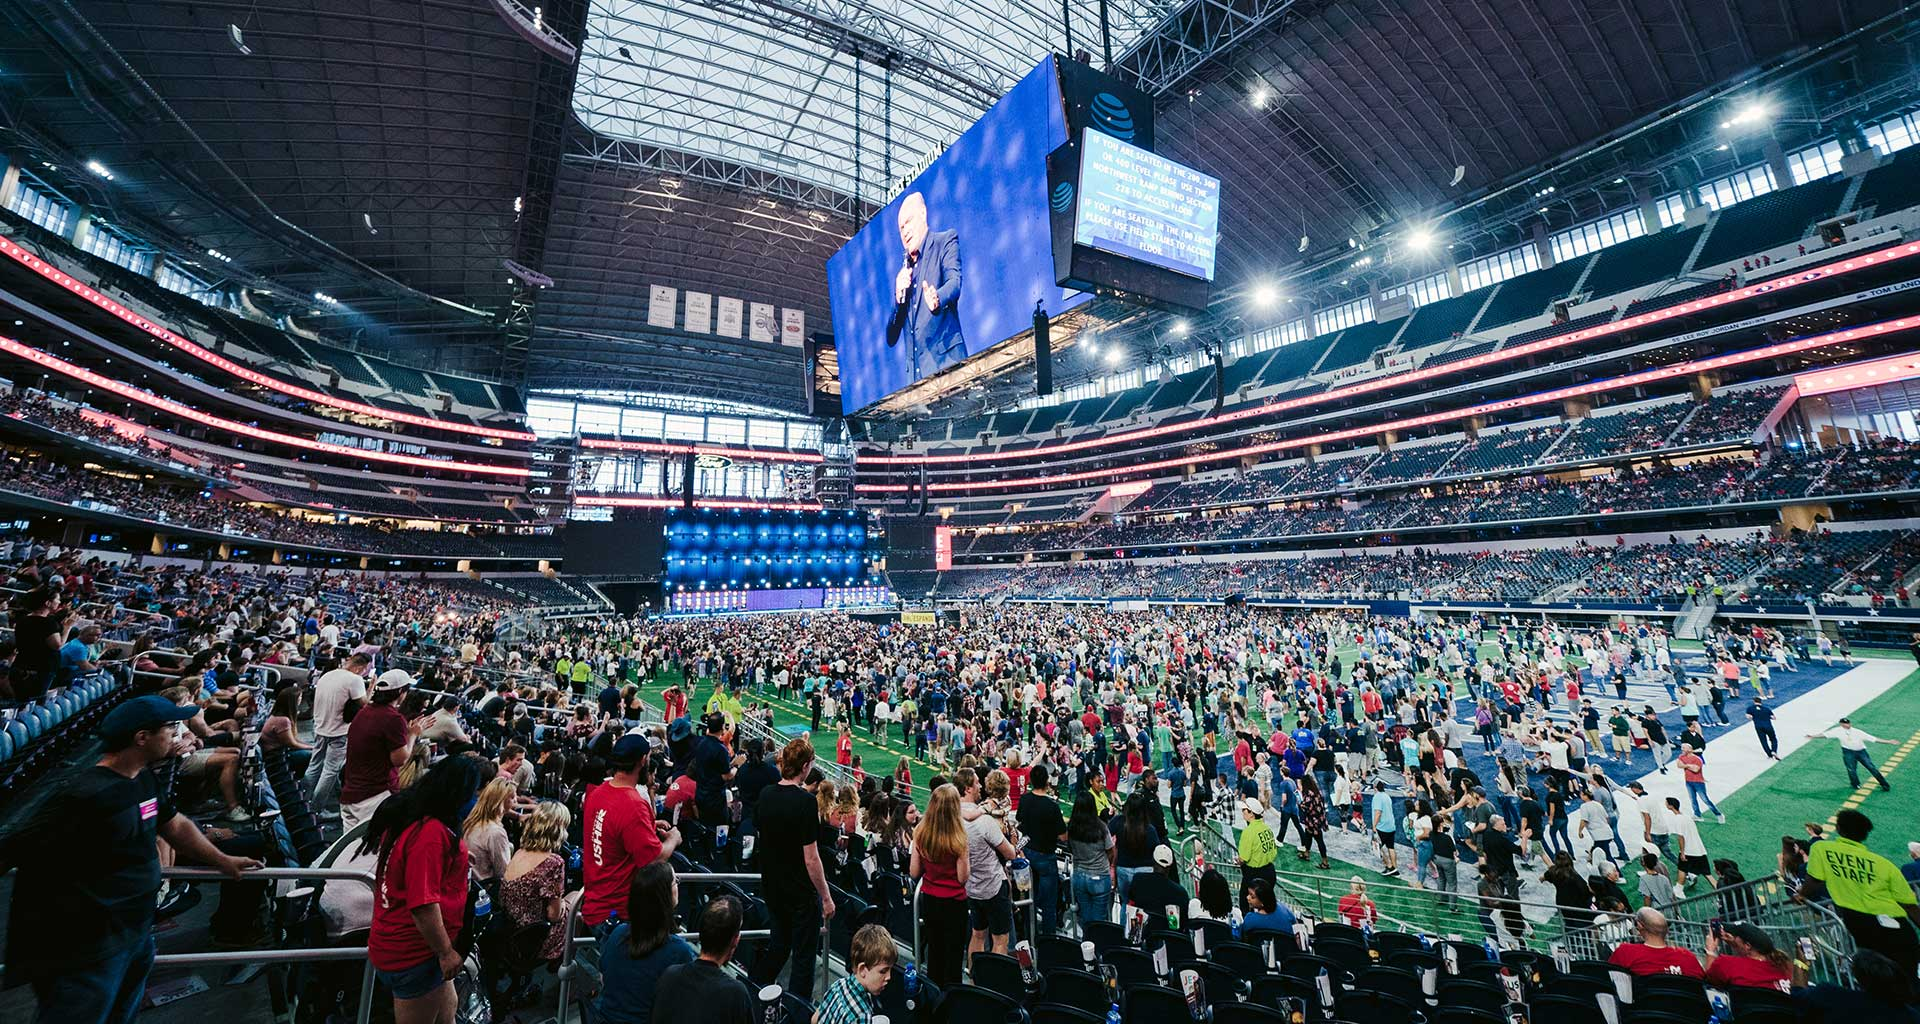 Thousands Respond to the Gospel in Texas